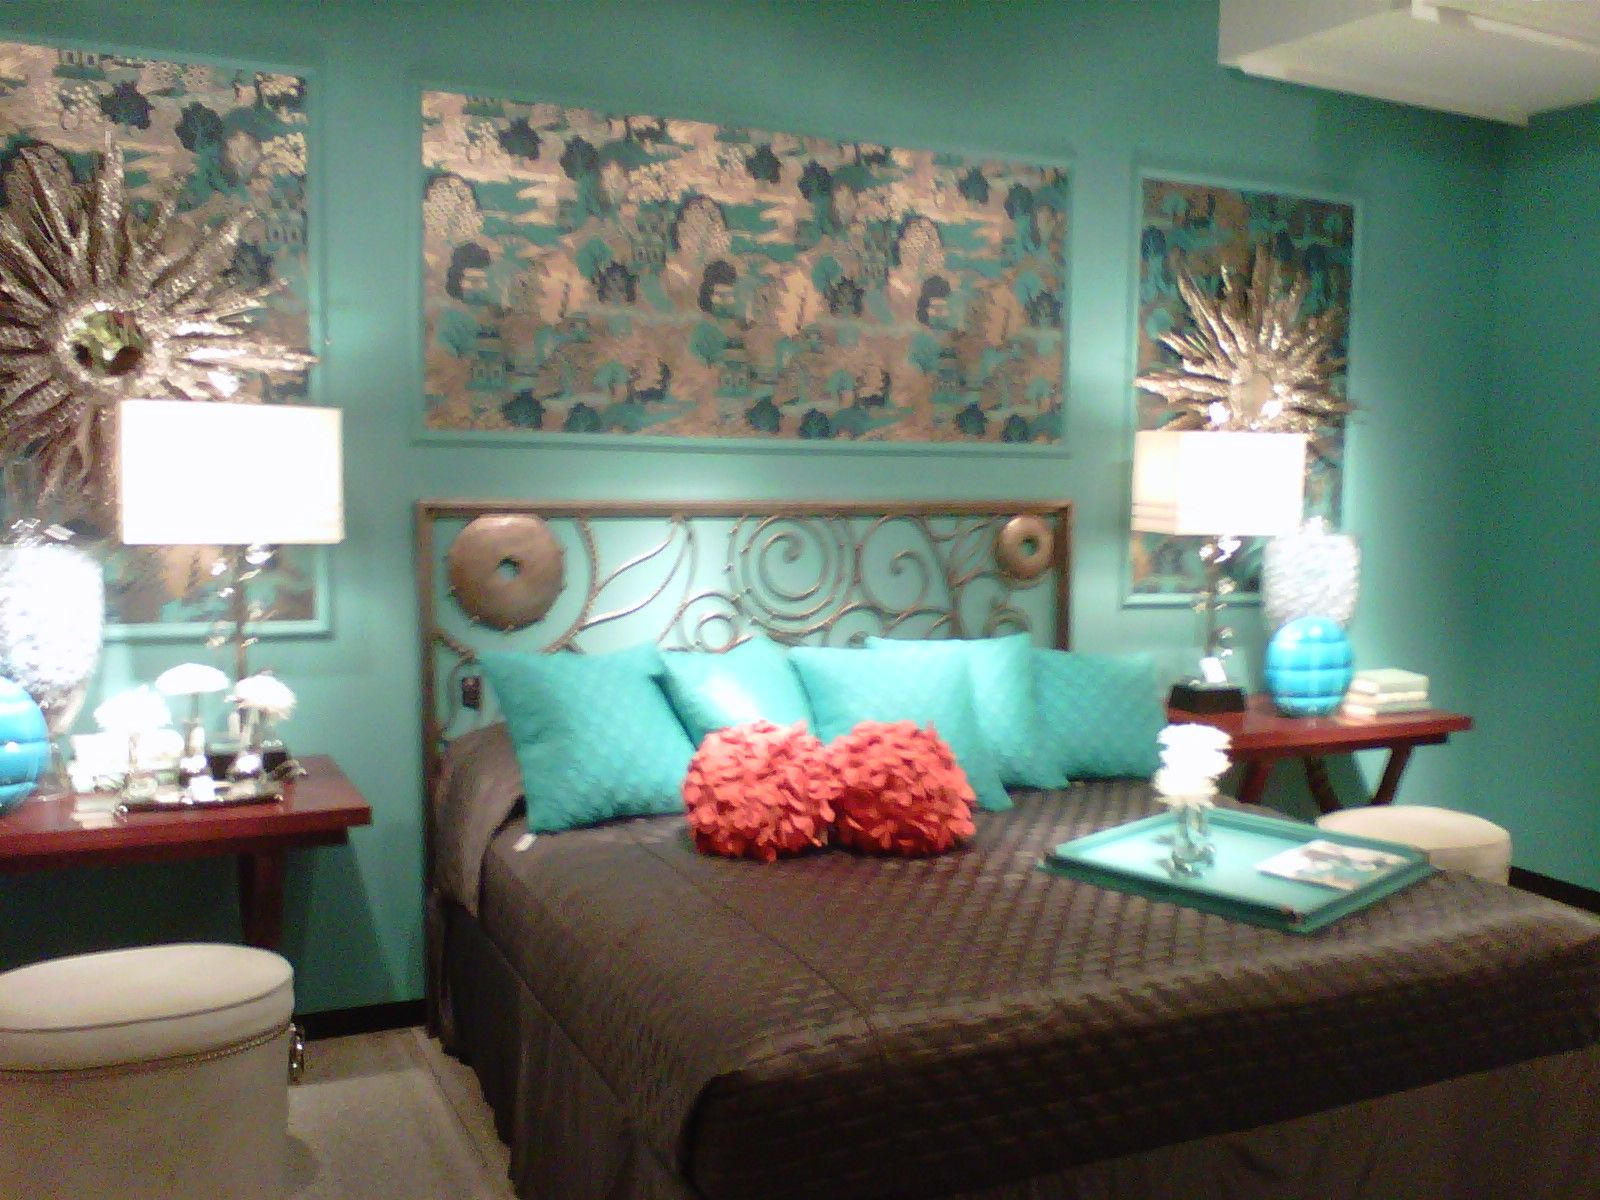 Vanity Turquoise Color For Bedroom Of Room Ideas Decorations Decor Paint Bedroom Stairs Acnn Decor